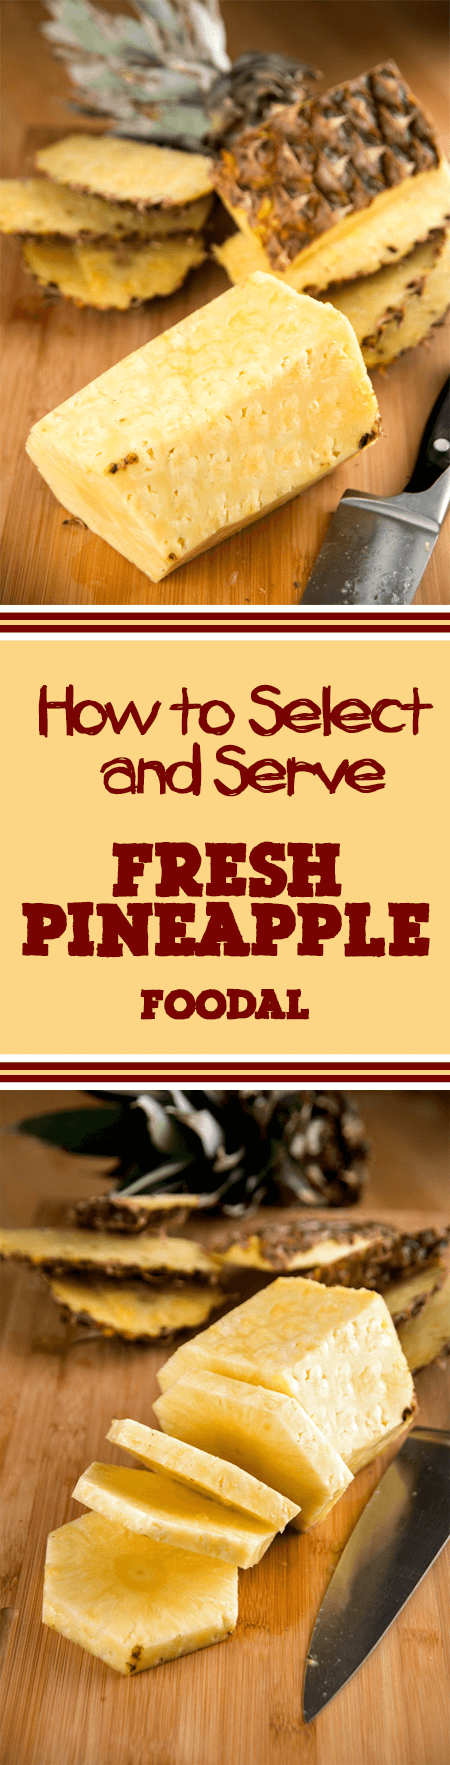 Have you ever gotten an underripe pineapple that was hard as your granite countertops? Having problems getting that sucker peeled and sliced just so? If so, give Foodal's detailed guide a read and you'll have all of your pineapple problems solved. Get the guide here: http://foodal.com/knowledge/how-to/select-serve-fresh-pineapple/